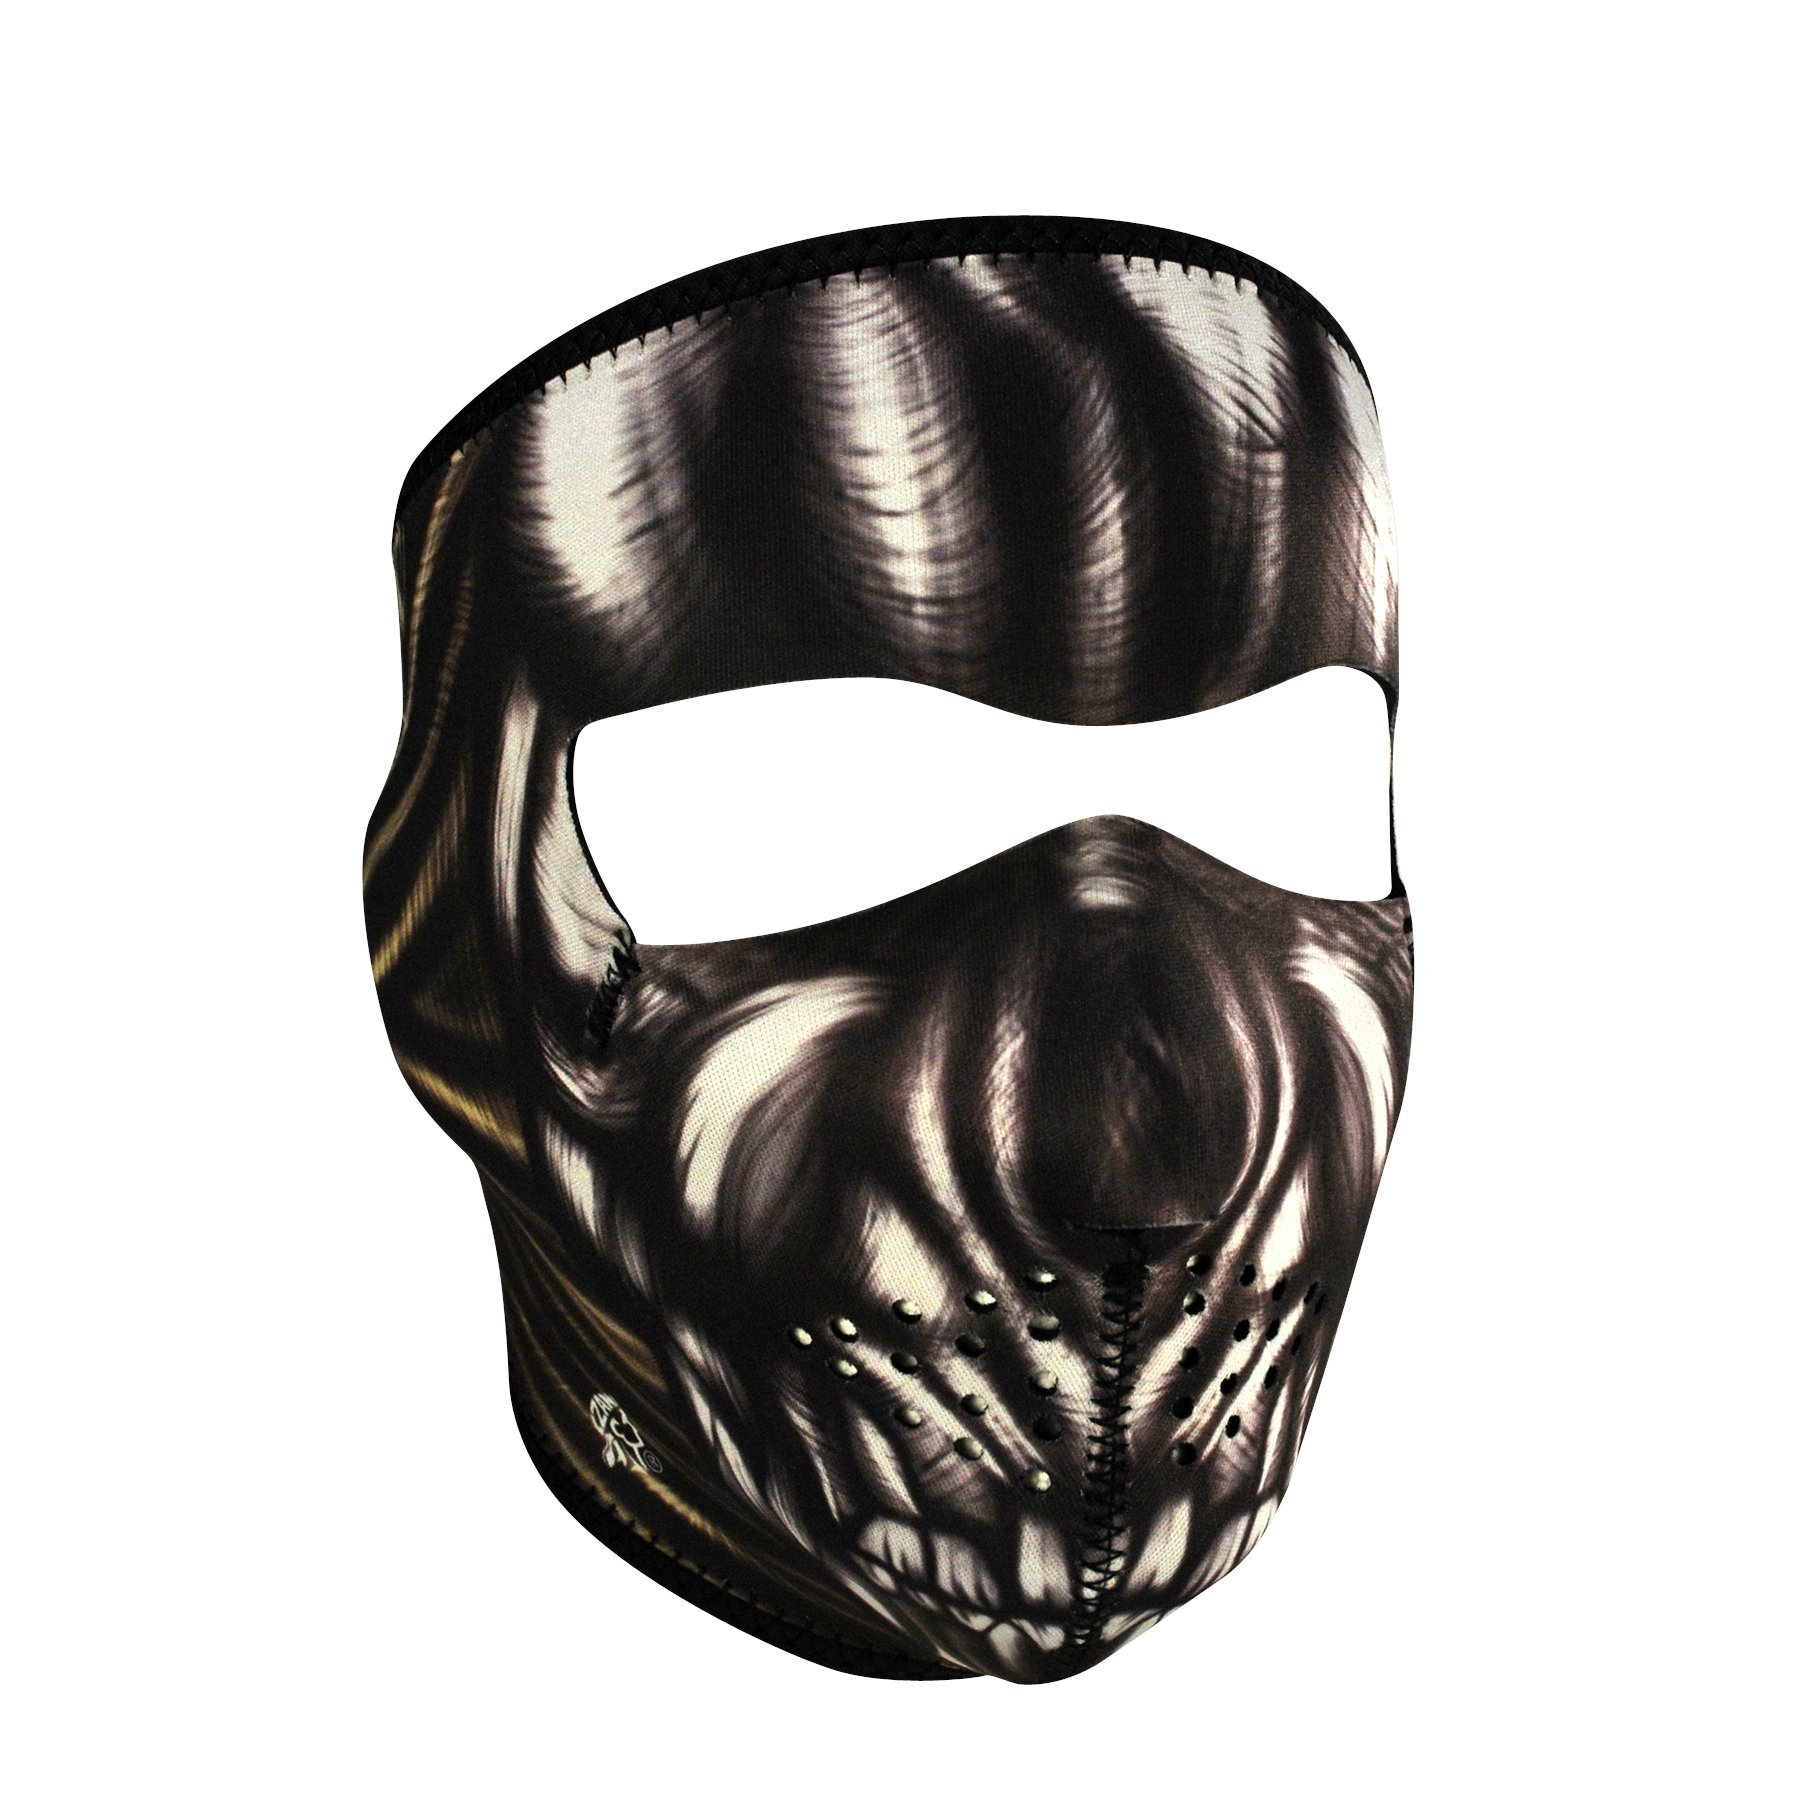 Zanheadgear WNFM083 Neoprene Full Face Mask, Ancient Skull